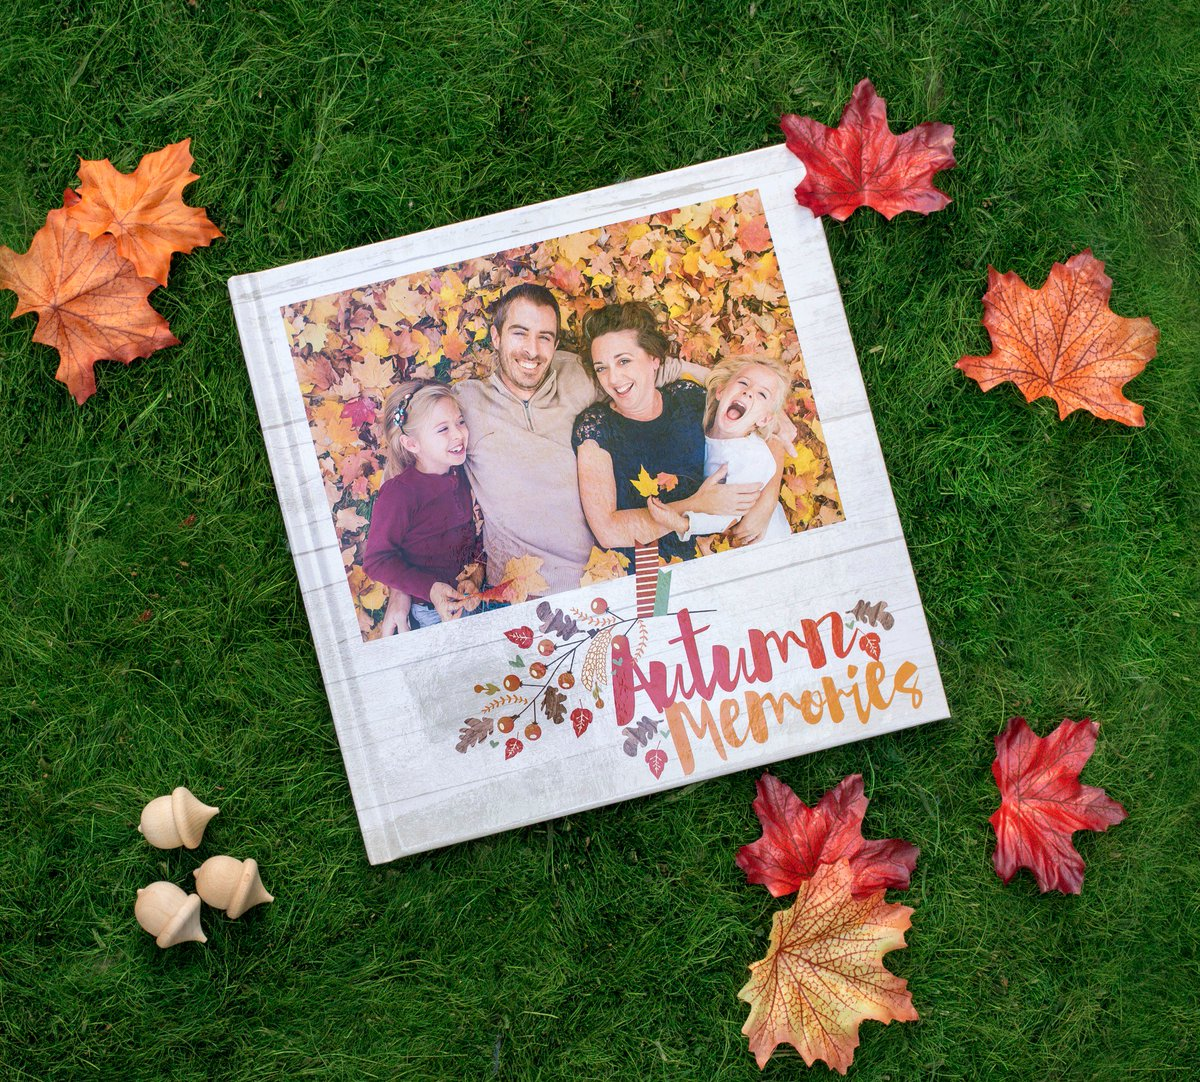 By our friends at Photo Play Paper, the new #Autumn Memories #photobook is here! https://t.co/GGhosxx3vq https://t.co/W1ztPKfo7P